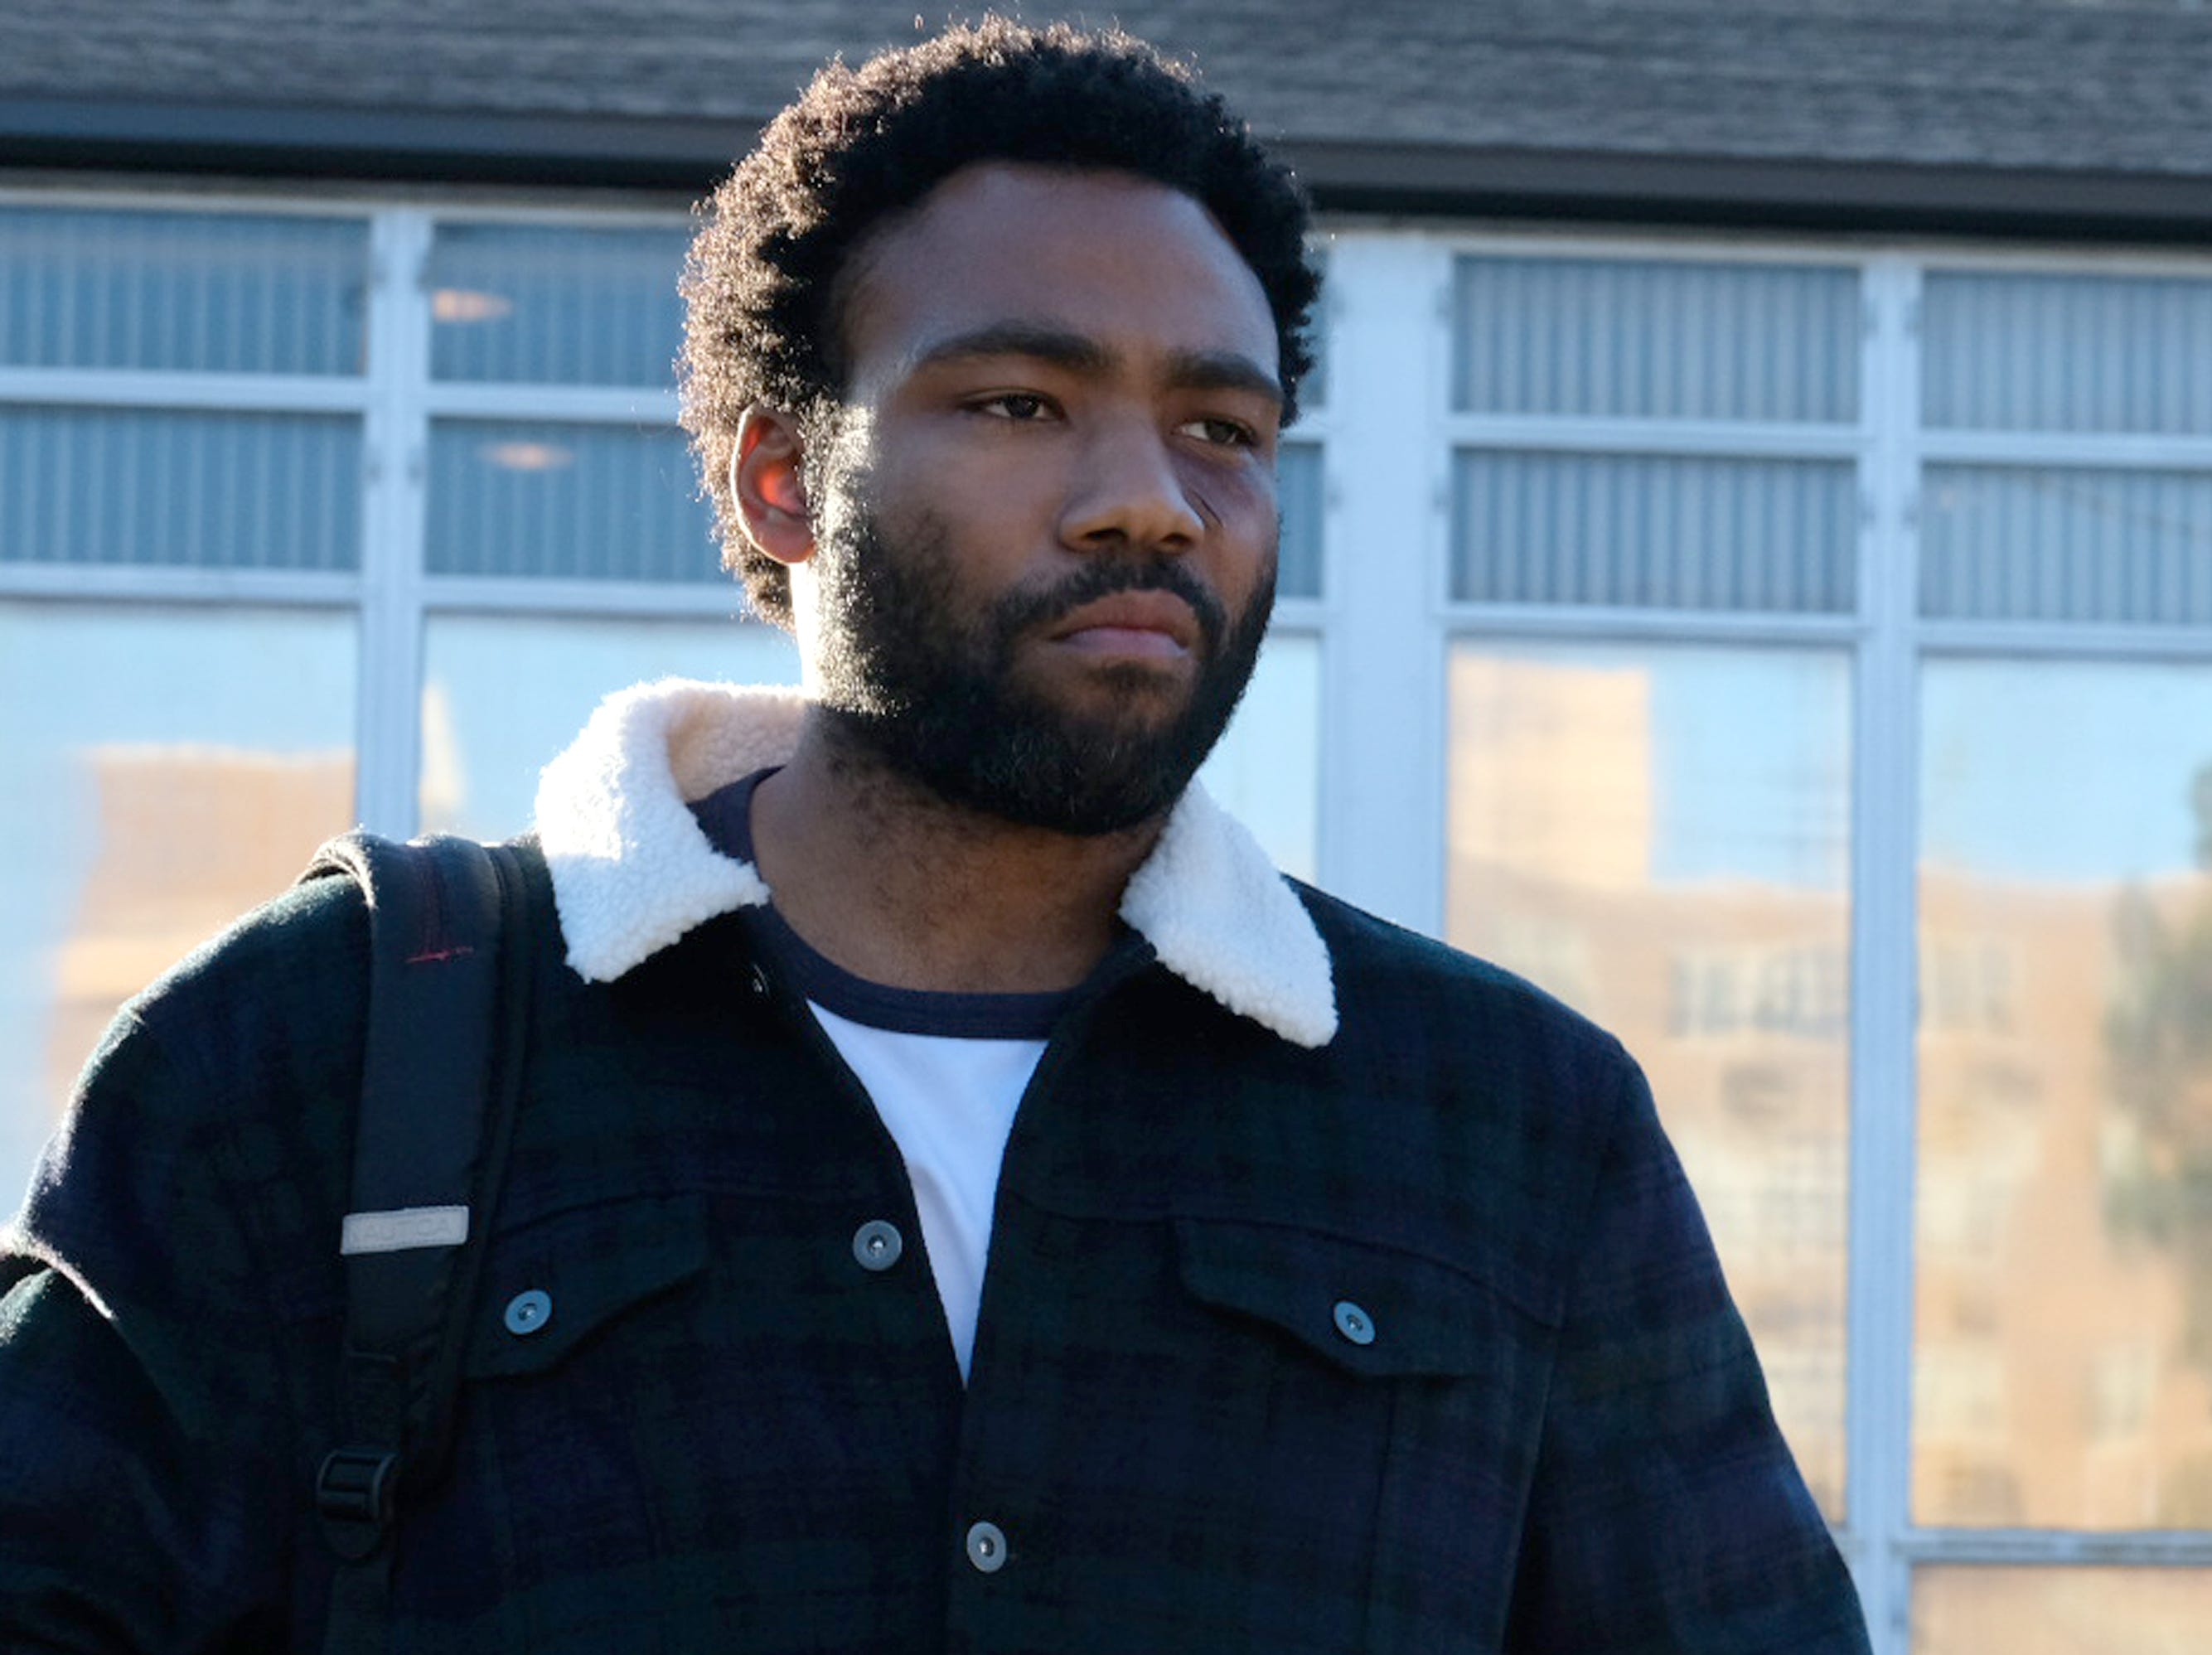 """This year brought us crazy comedies, dramas both fictional and based on real events, and outstanding performances from actors like Donald Glover in FX's """"Atlanta."""" Here are some of USA TODAY writer Kelly Lawler's favorites of 2018."""